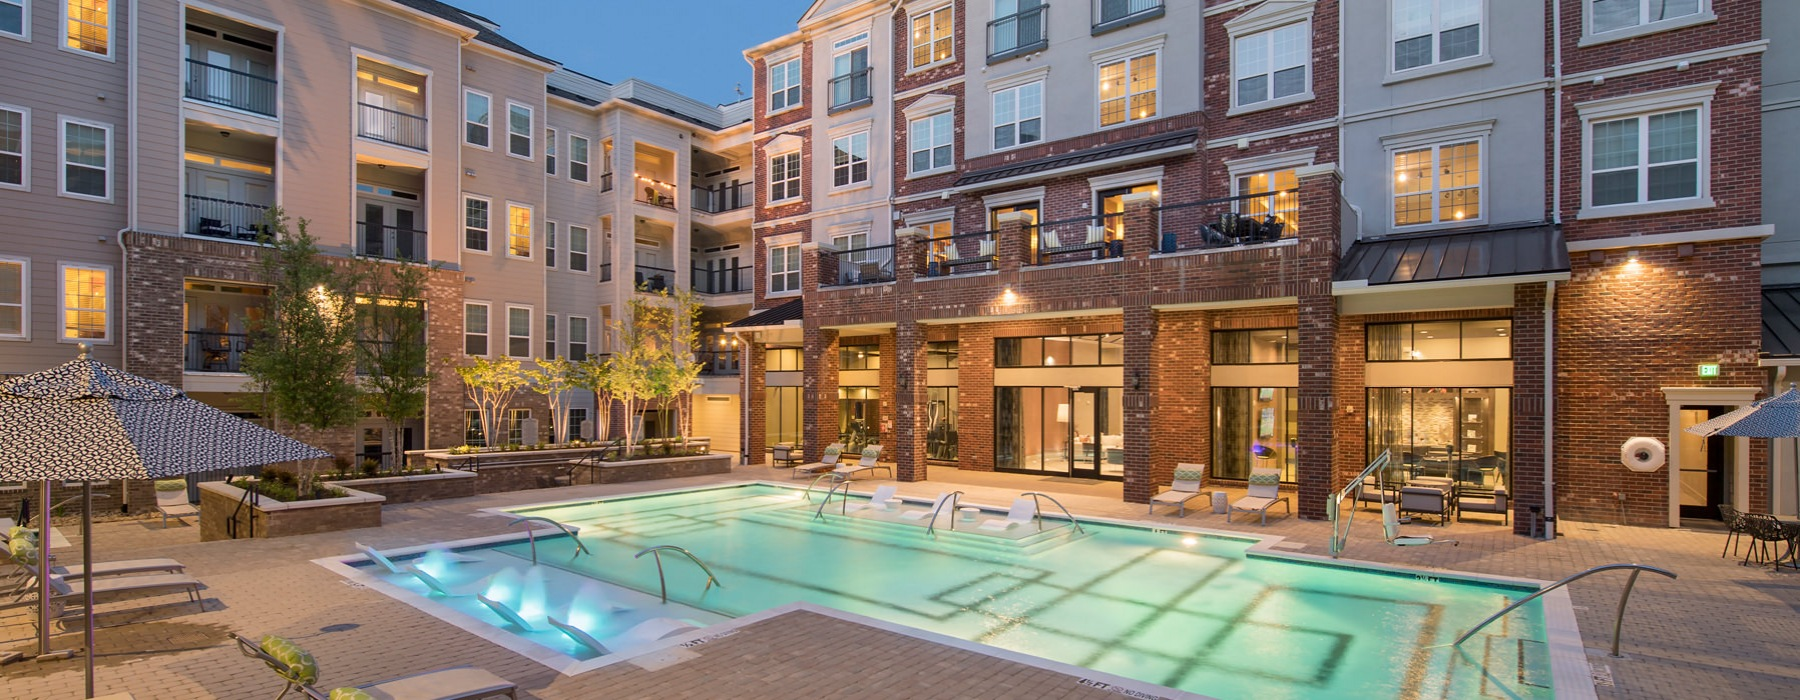 Creekside at Crabtree pool encompassed by gym, resident lounge, and apartment units